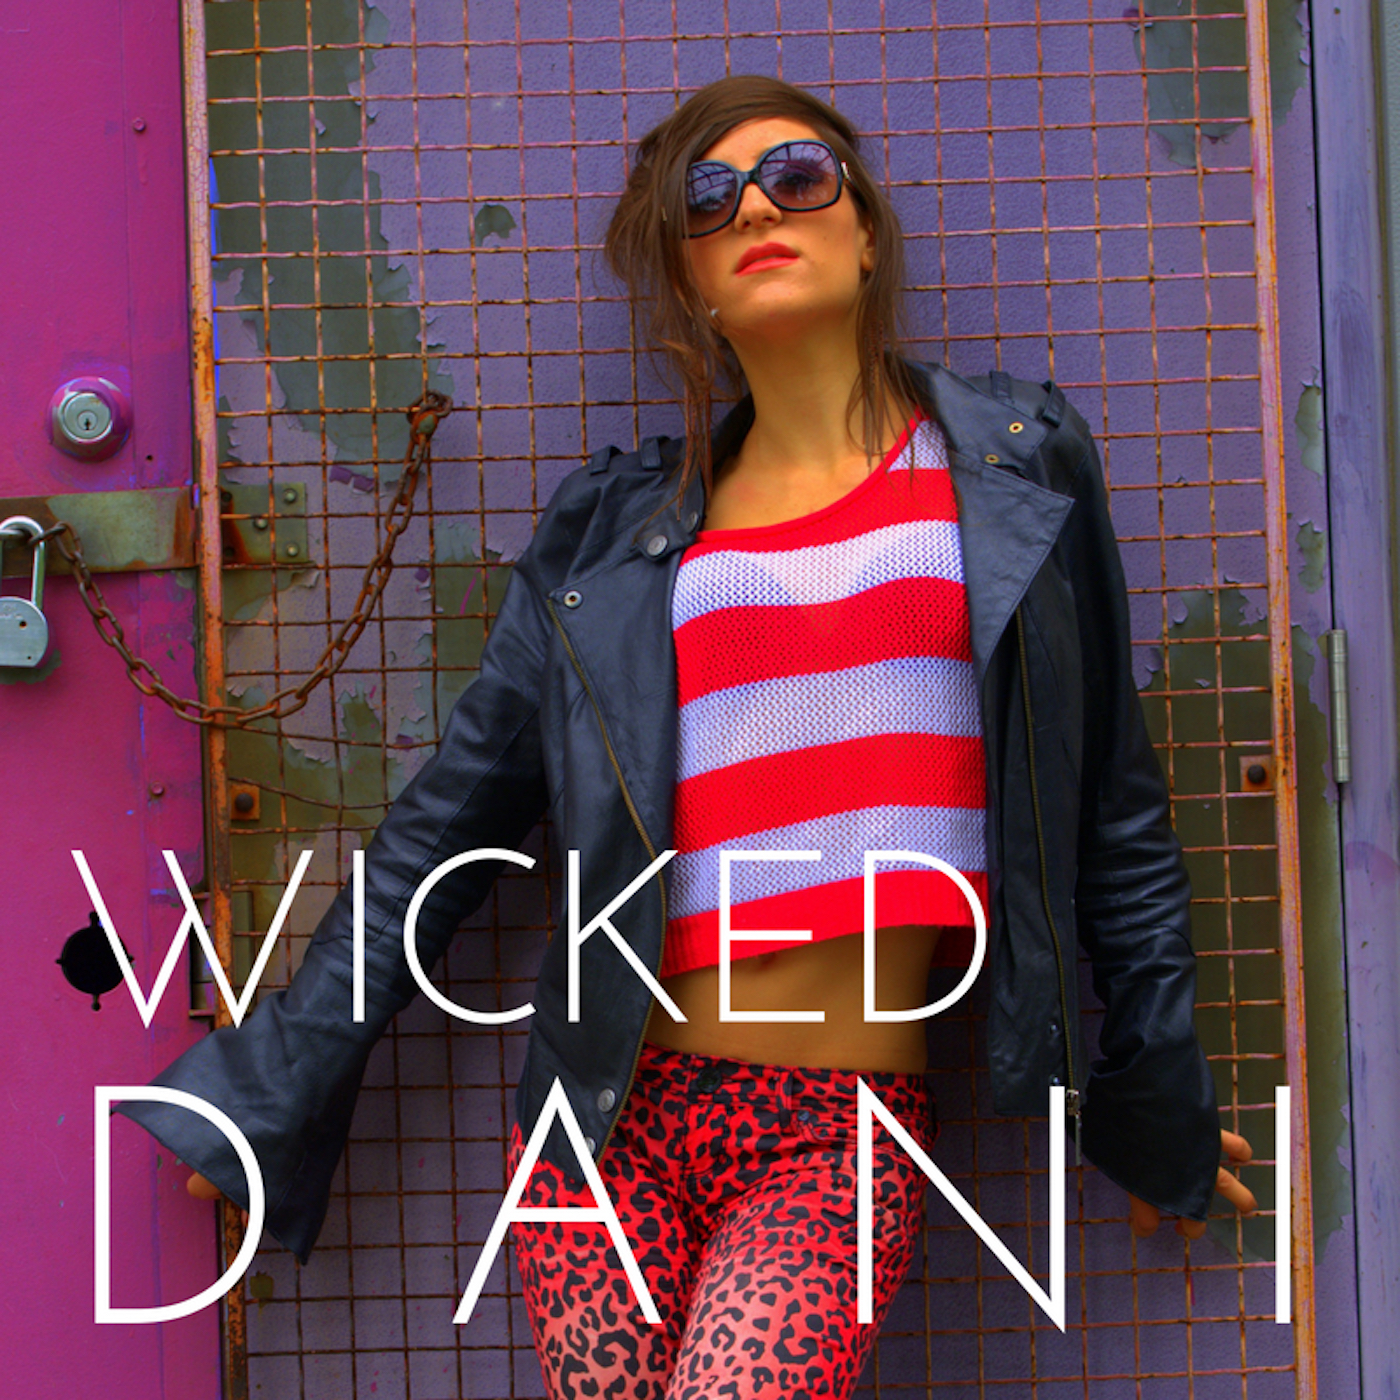 Wicked (Album Art).jpg